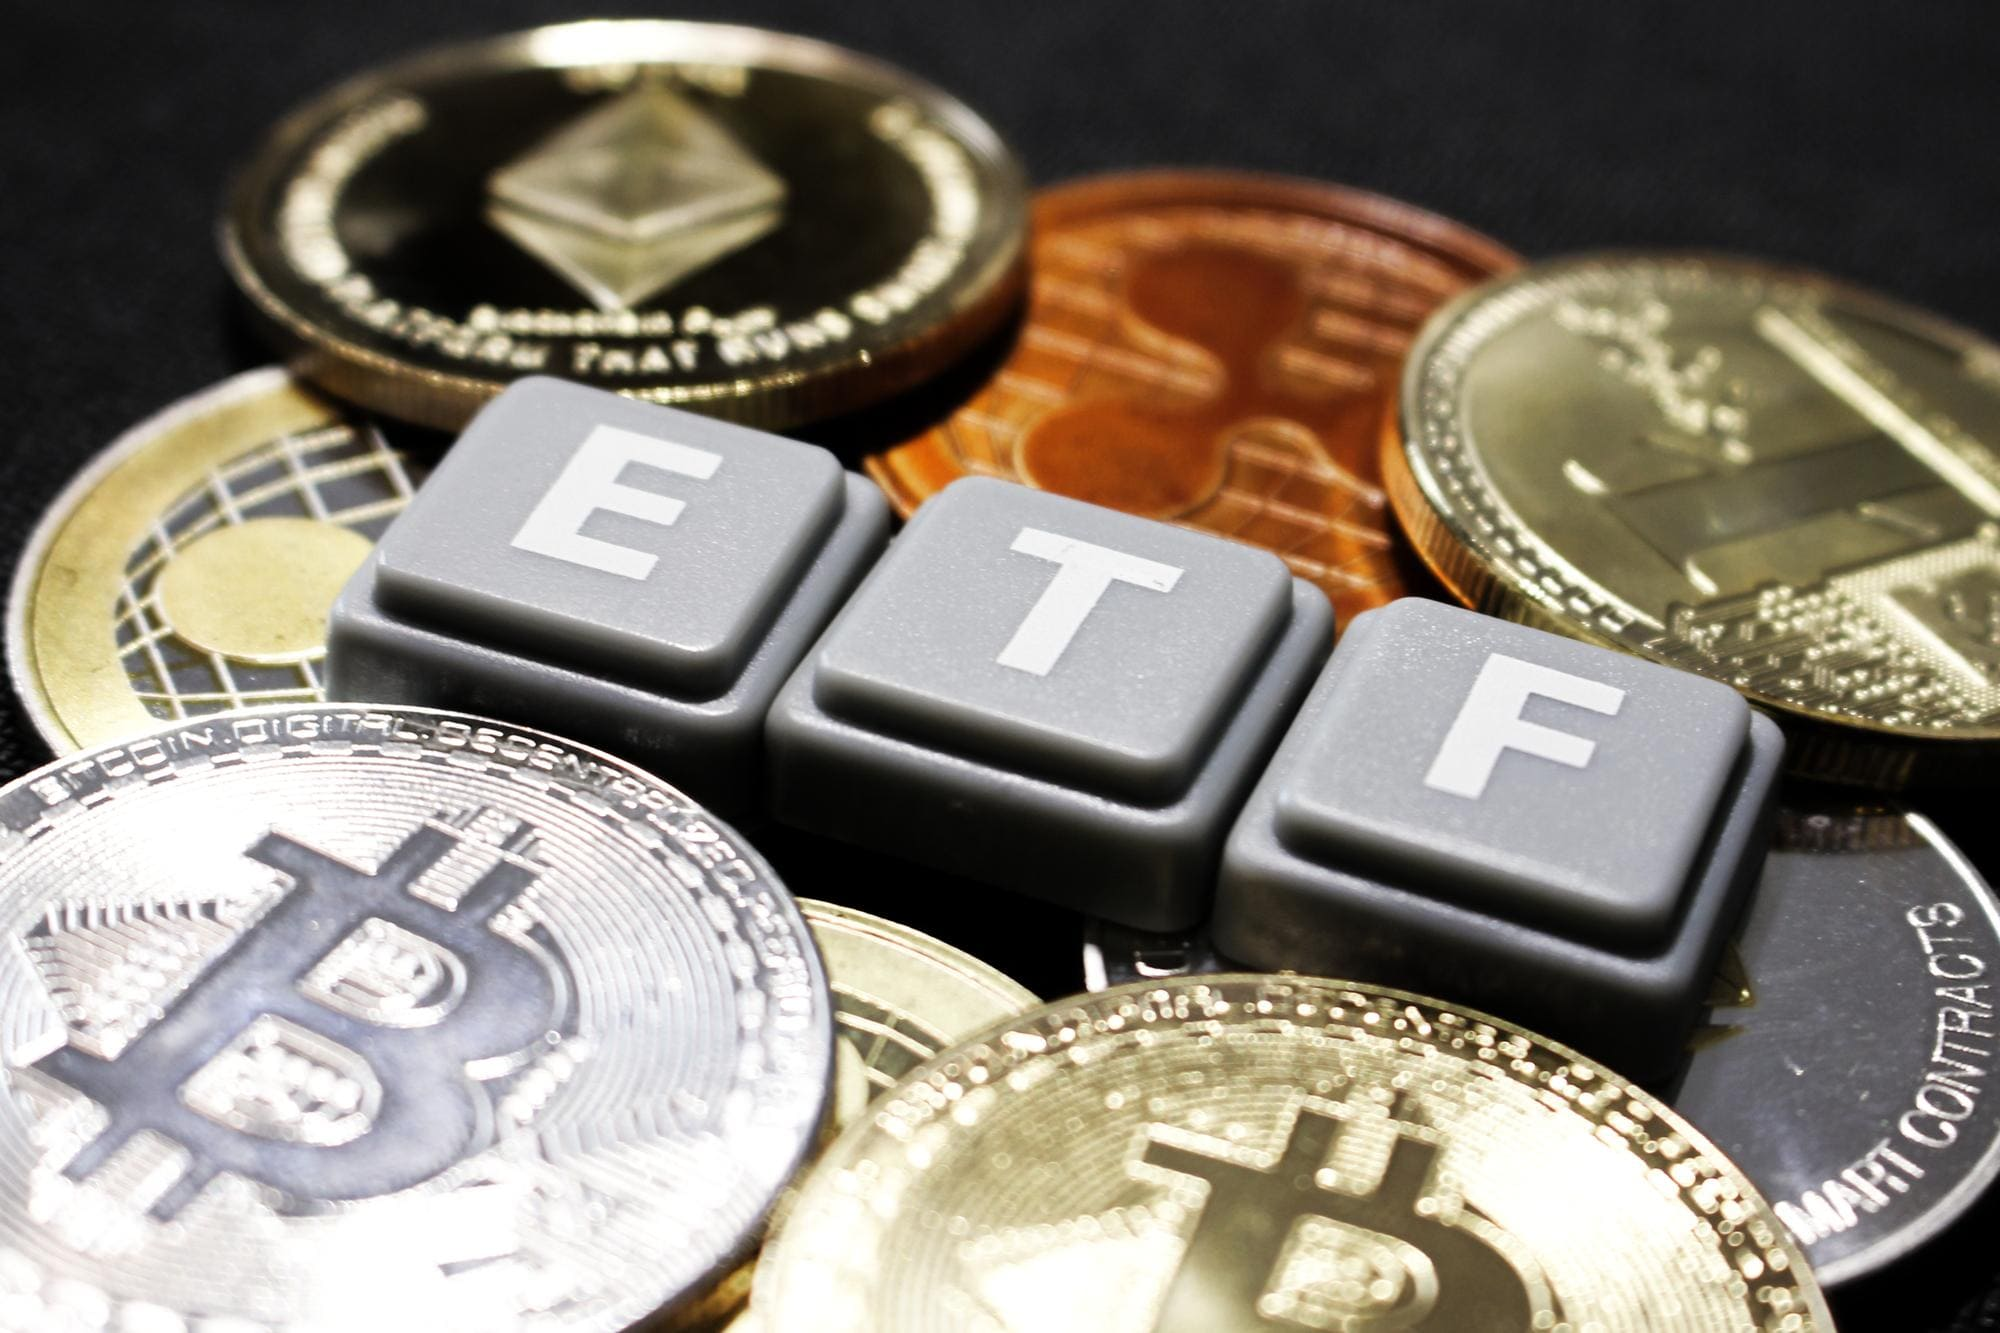 Bitcoin Etf on Hold